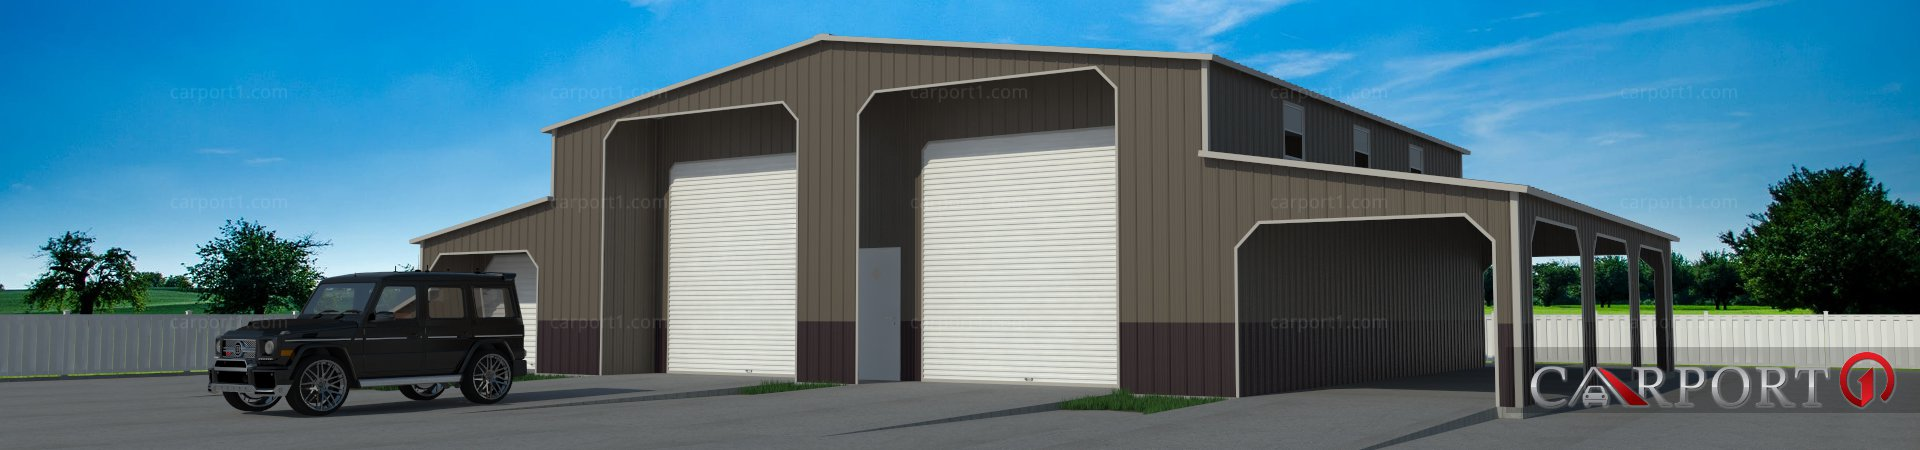 Best Prices For Custom Metal Carports Garages Barns Rv